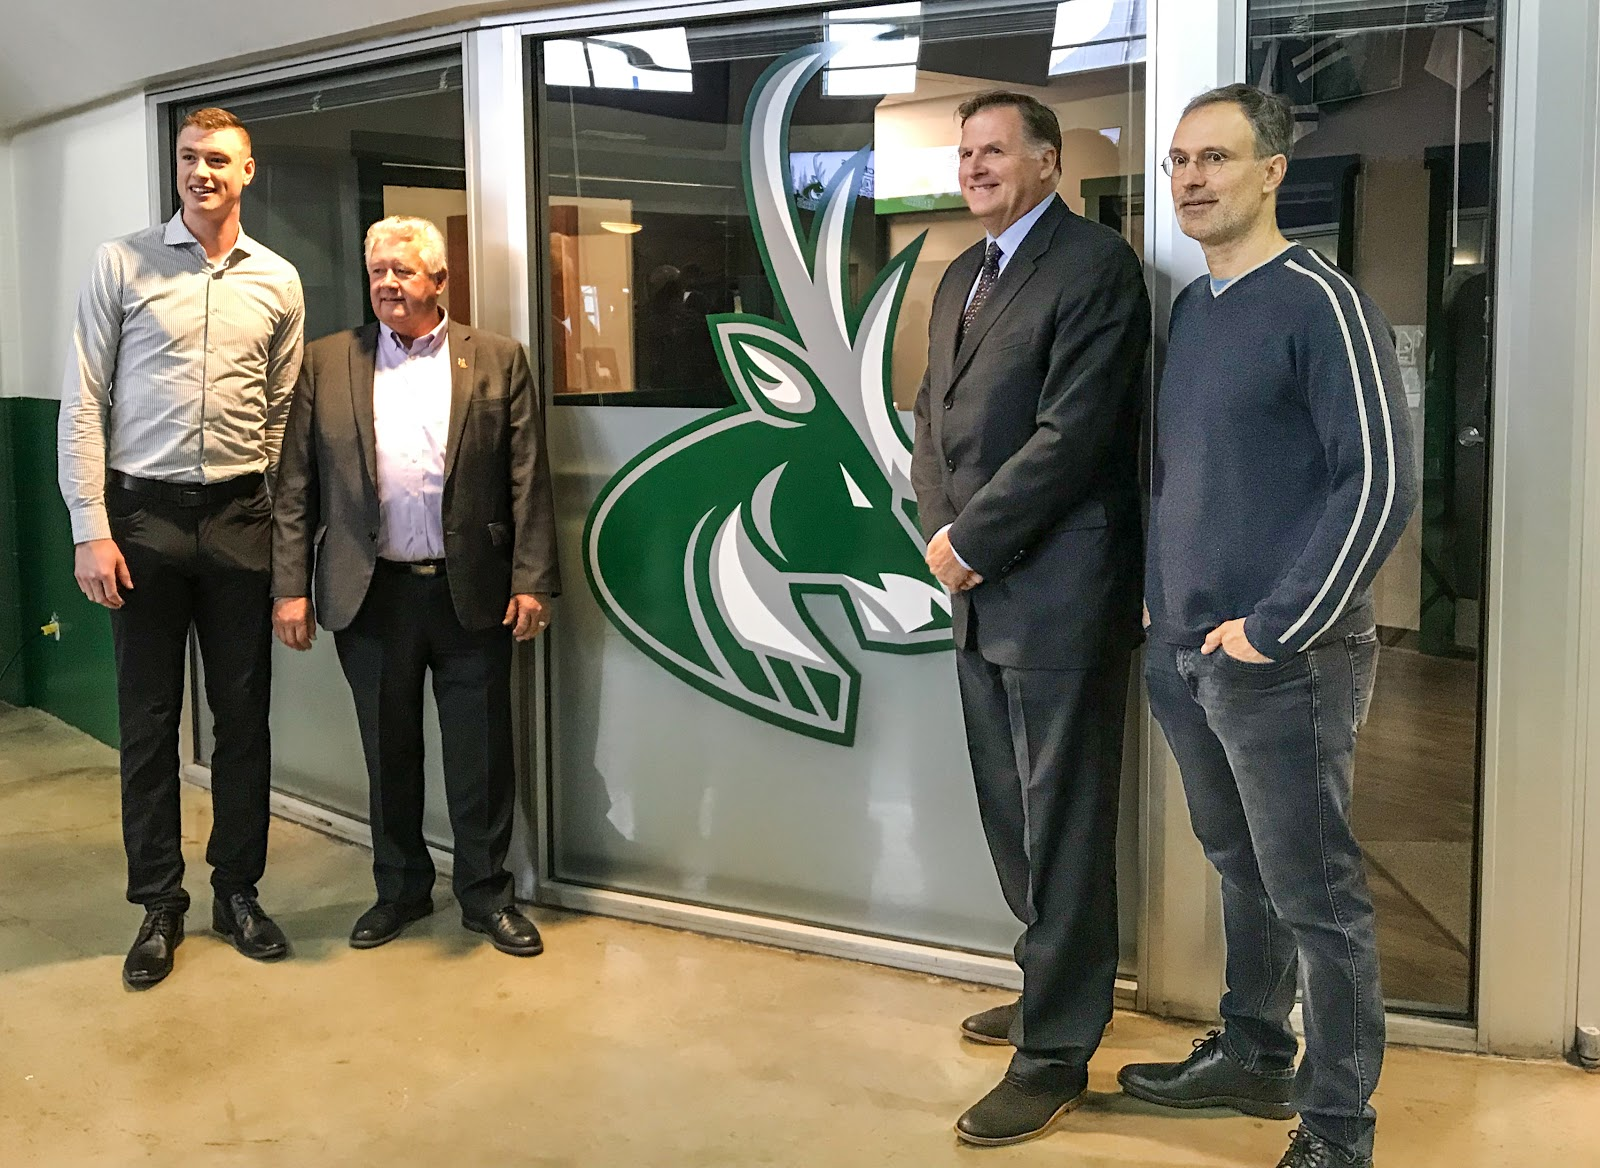 Nathan Lieuwen, majority owner; Lee Pratt, Cranbrook mayor; Chris Hebb, BCHL commissioner; and Scott Niedermayer, a Hall of Fame NHL defenceman and part owner of the new Junior Hockey franchise, stand in front of the new Cranbrook Bucks logo at Western Financial Place.